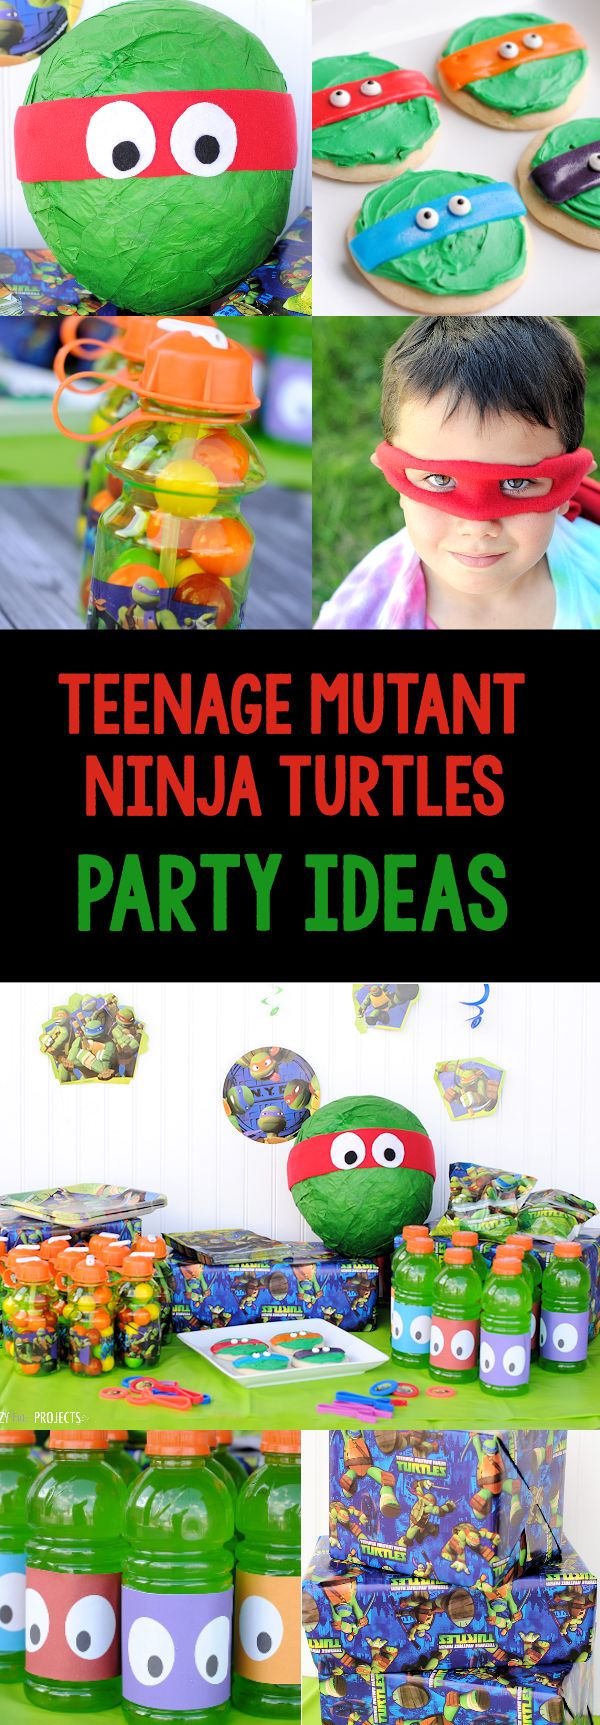 Teenage Mutant Ninja Turtles Party Ideas-Games, Invitations, Favors, Food & More // crazylittleprojects.com // #partyidea #ninjaturtles #HRS